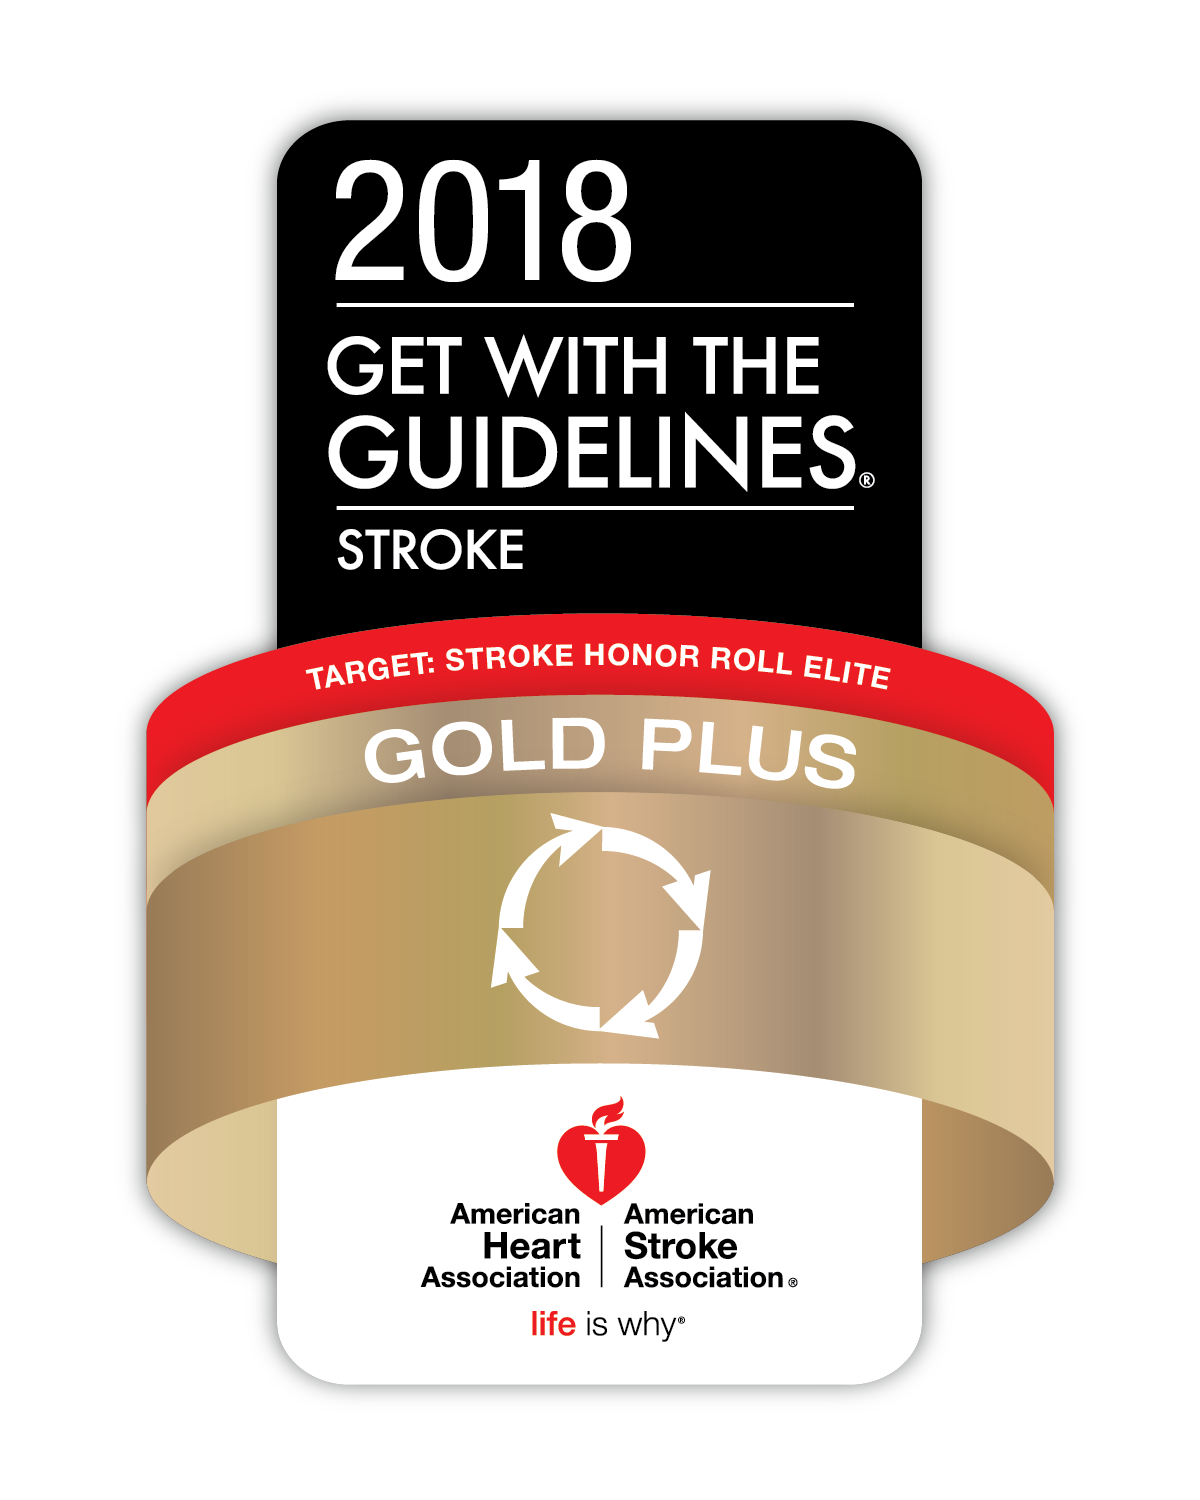 American Heart Association 2018 Get with the Guidelines Gold Plus Award